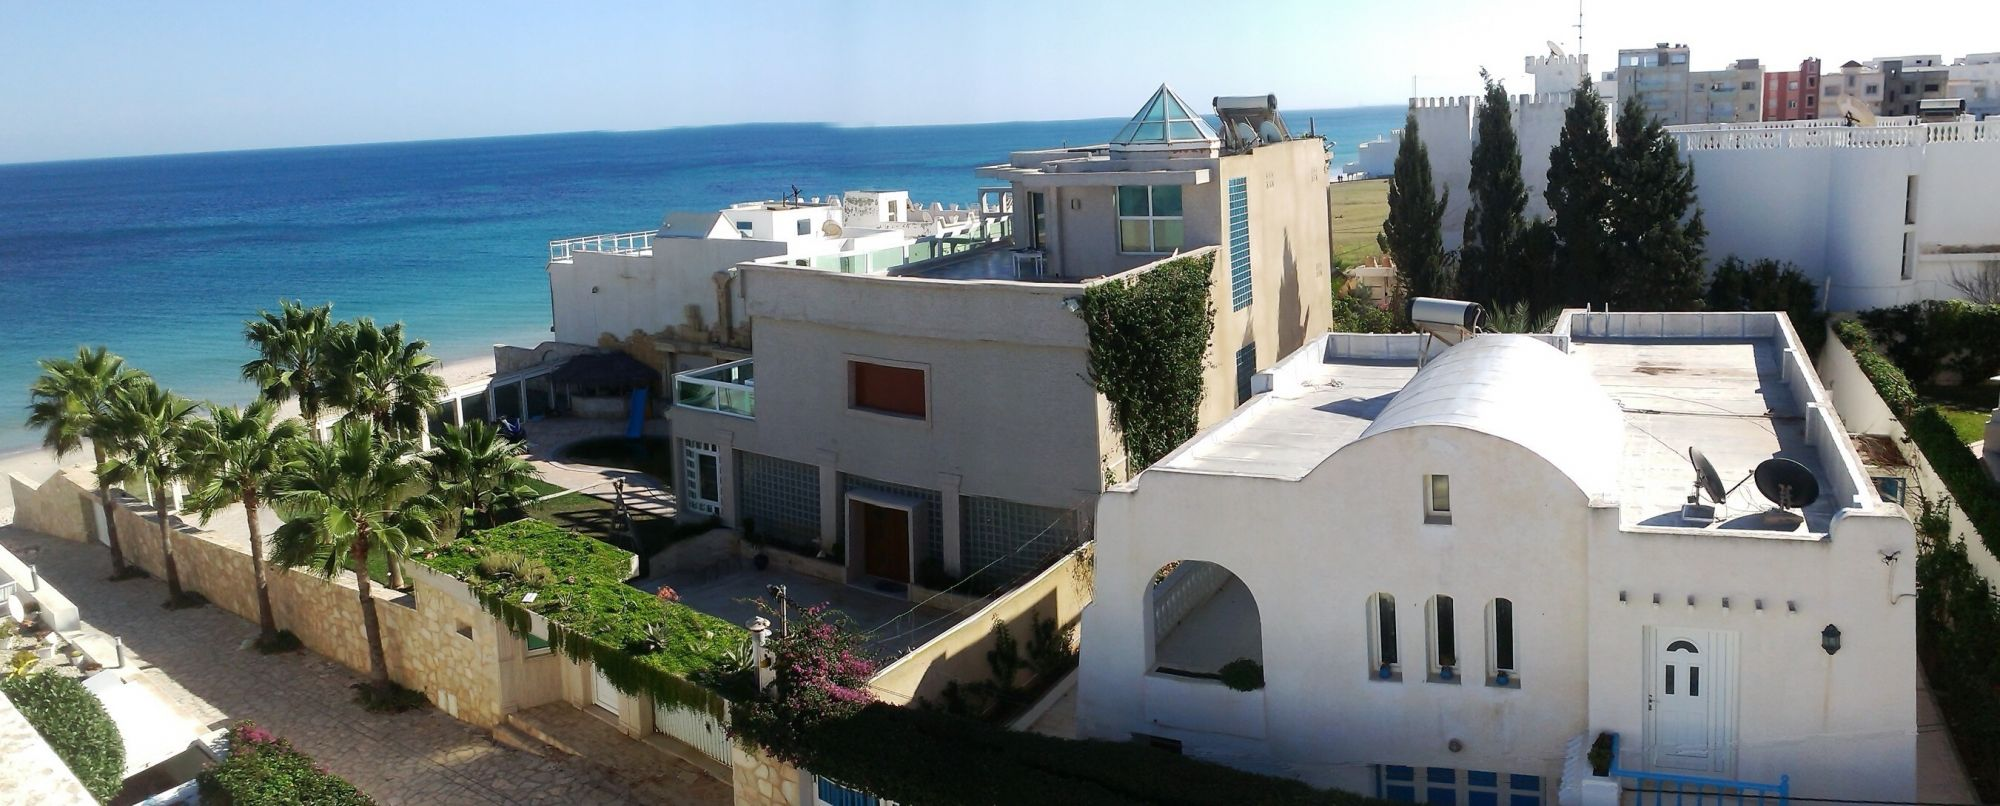 Ground floor of a villa 30 meters off the beach location for Maison traditionnelle tunisienne